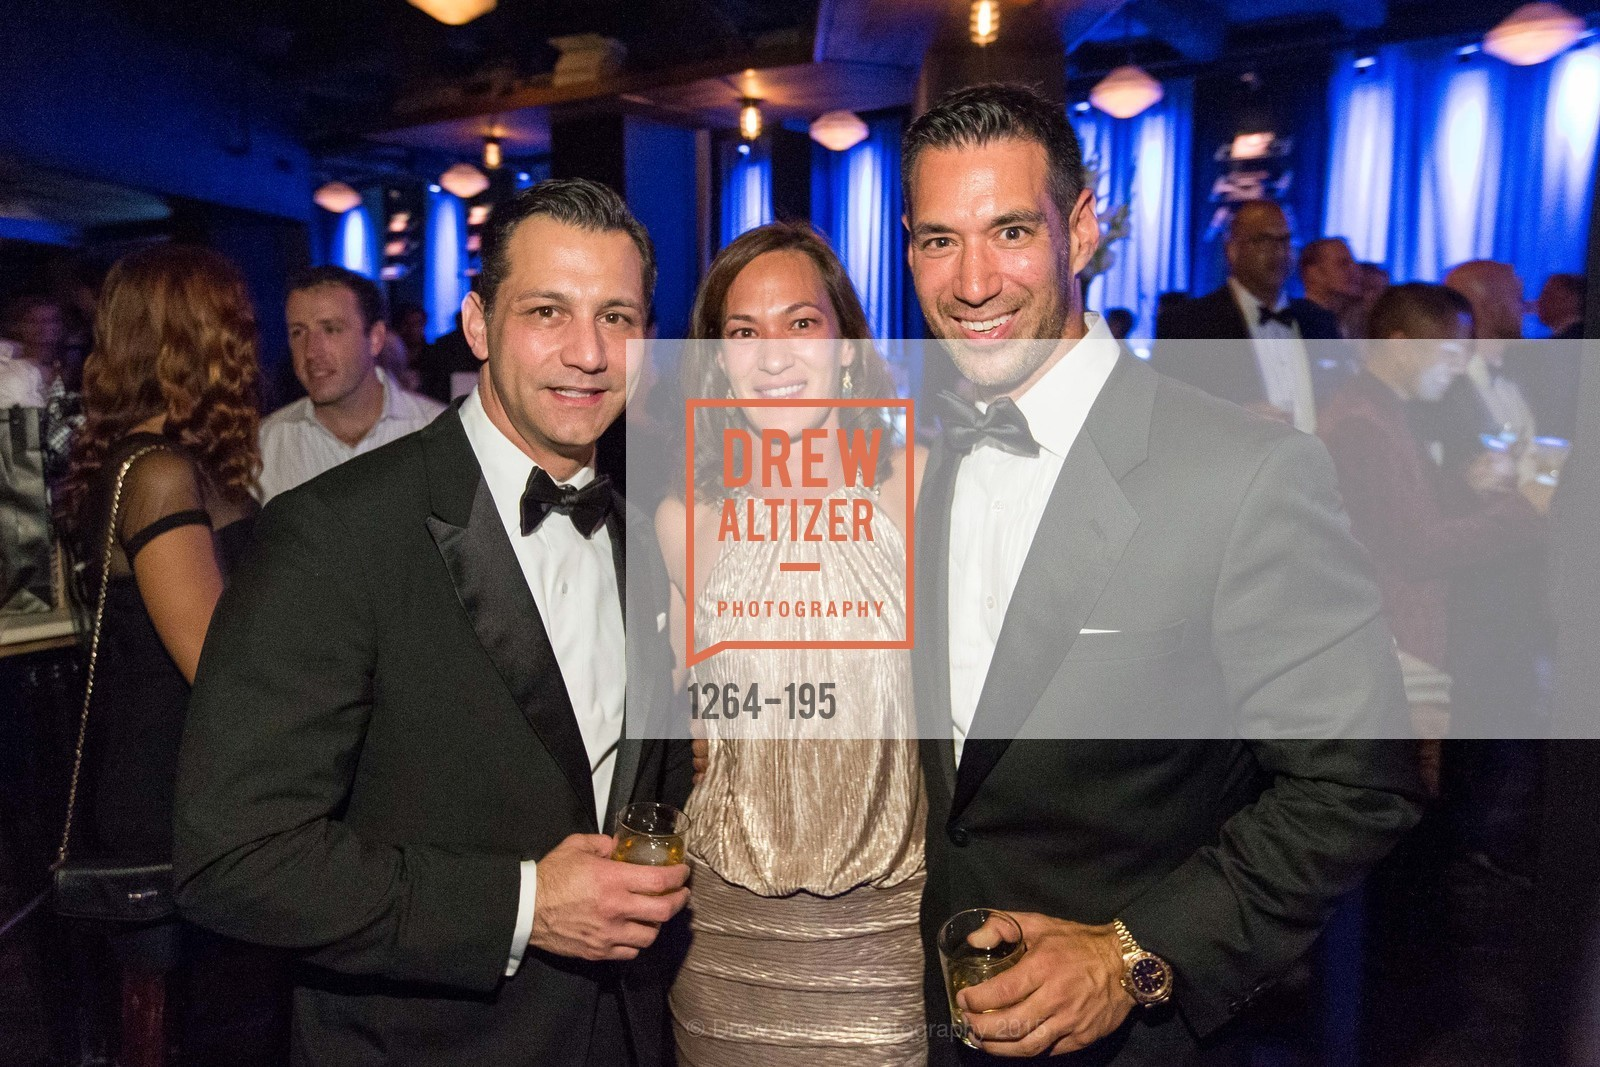 Todd Montgomery, Stacy Lim, Chris Lim, Climb Real Estate and Sindeo Celebrate the Launch of Million Dollar Listing San Francisco, Local Edition San Francisco. 691 Market St, July 8th, 2015,Drew Altizer, Drew Altizer Photography, full-service agency, private events, San Francisco photographer, photographer california